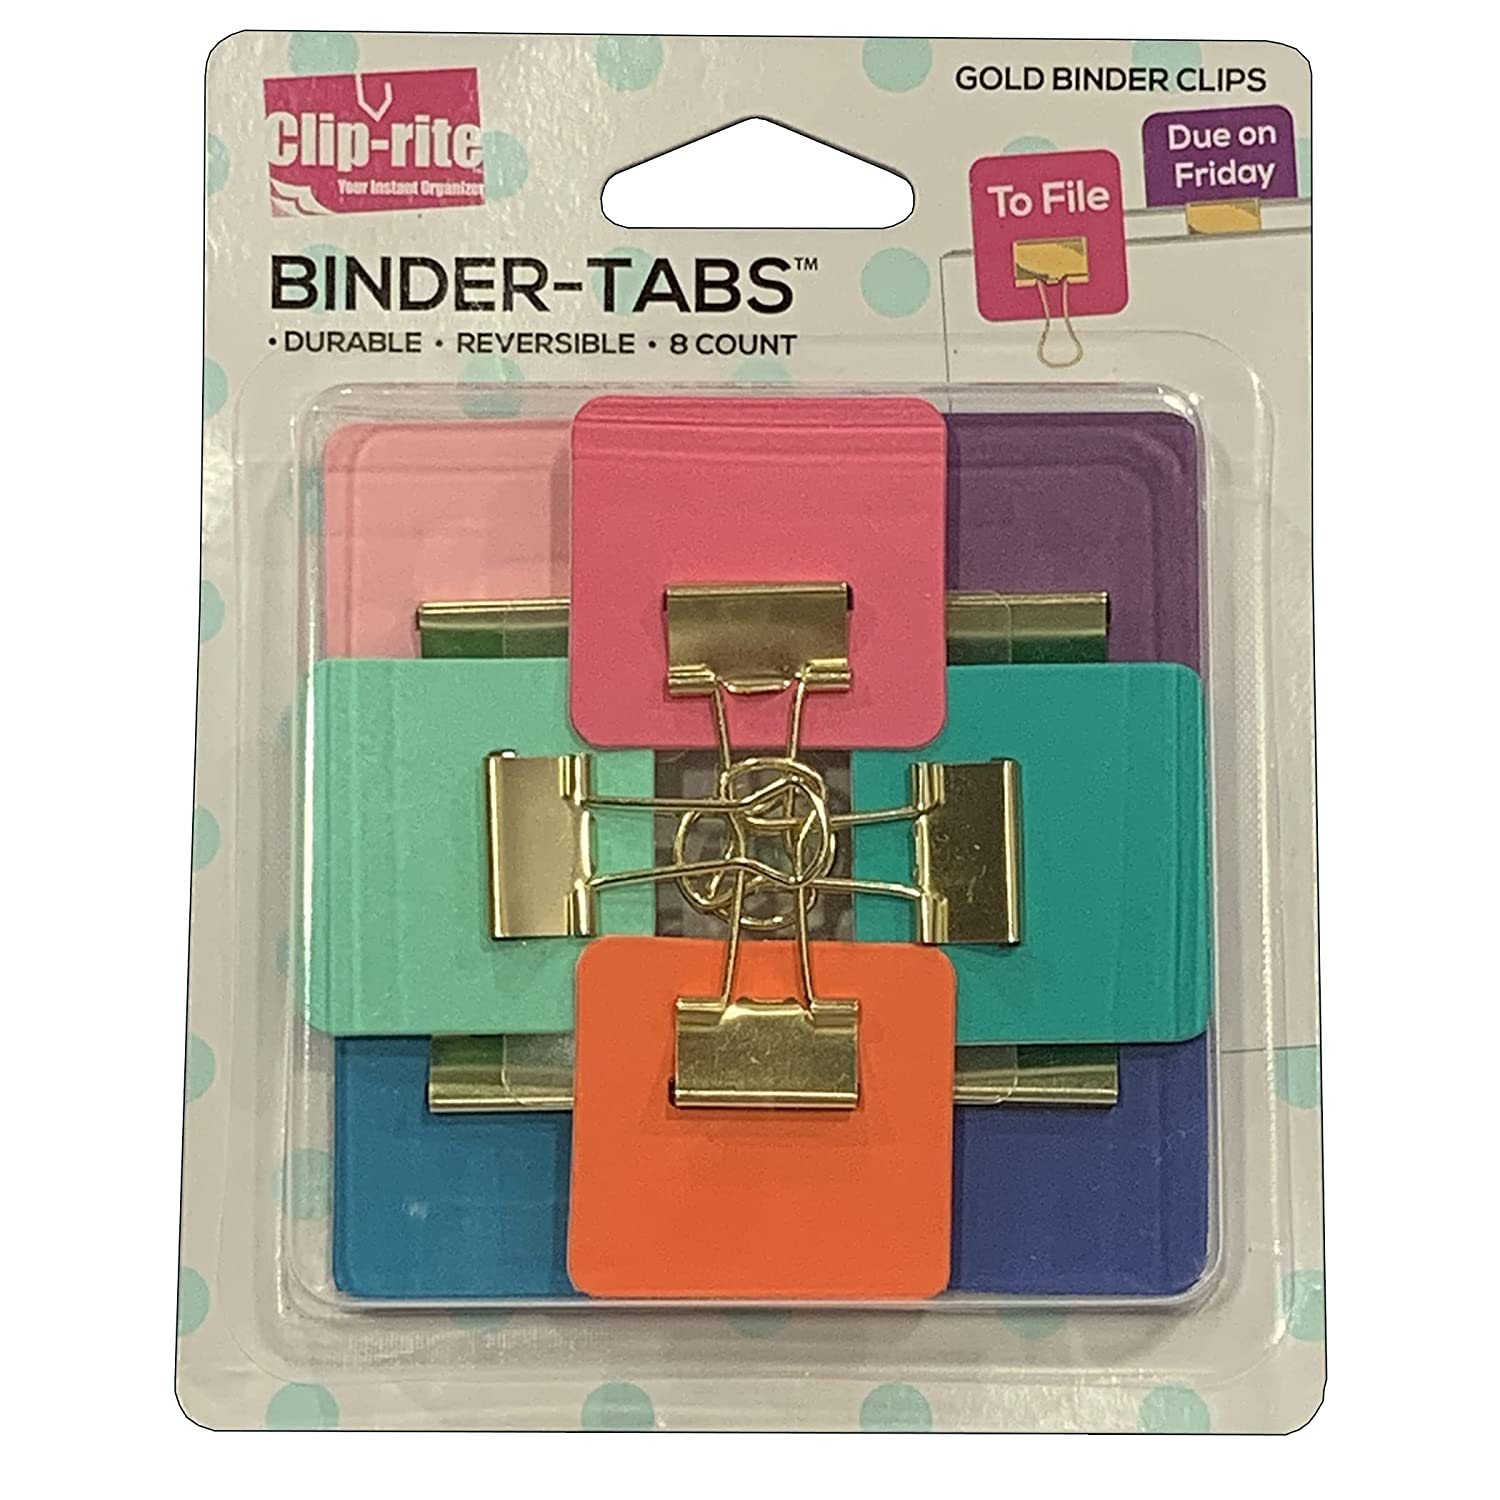 Clip-rite Binder Tabs Assorted Gold Plated 8 Pack 1 Recommended year warranty of